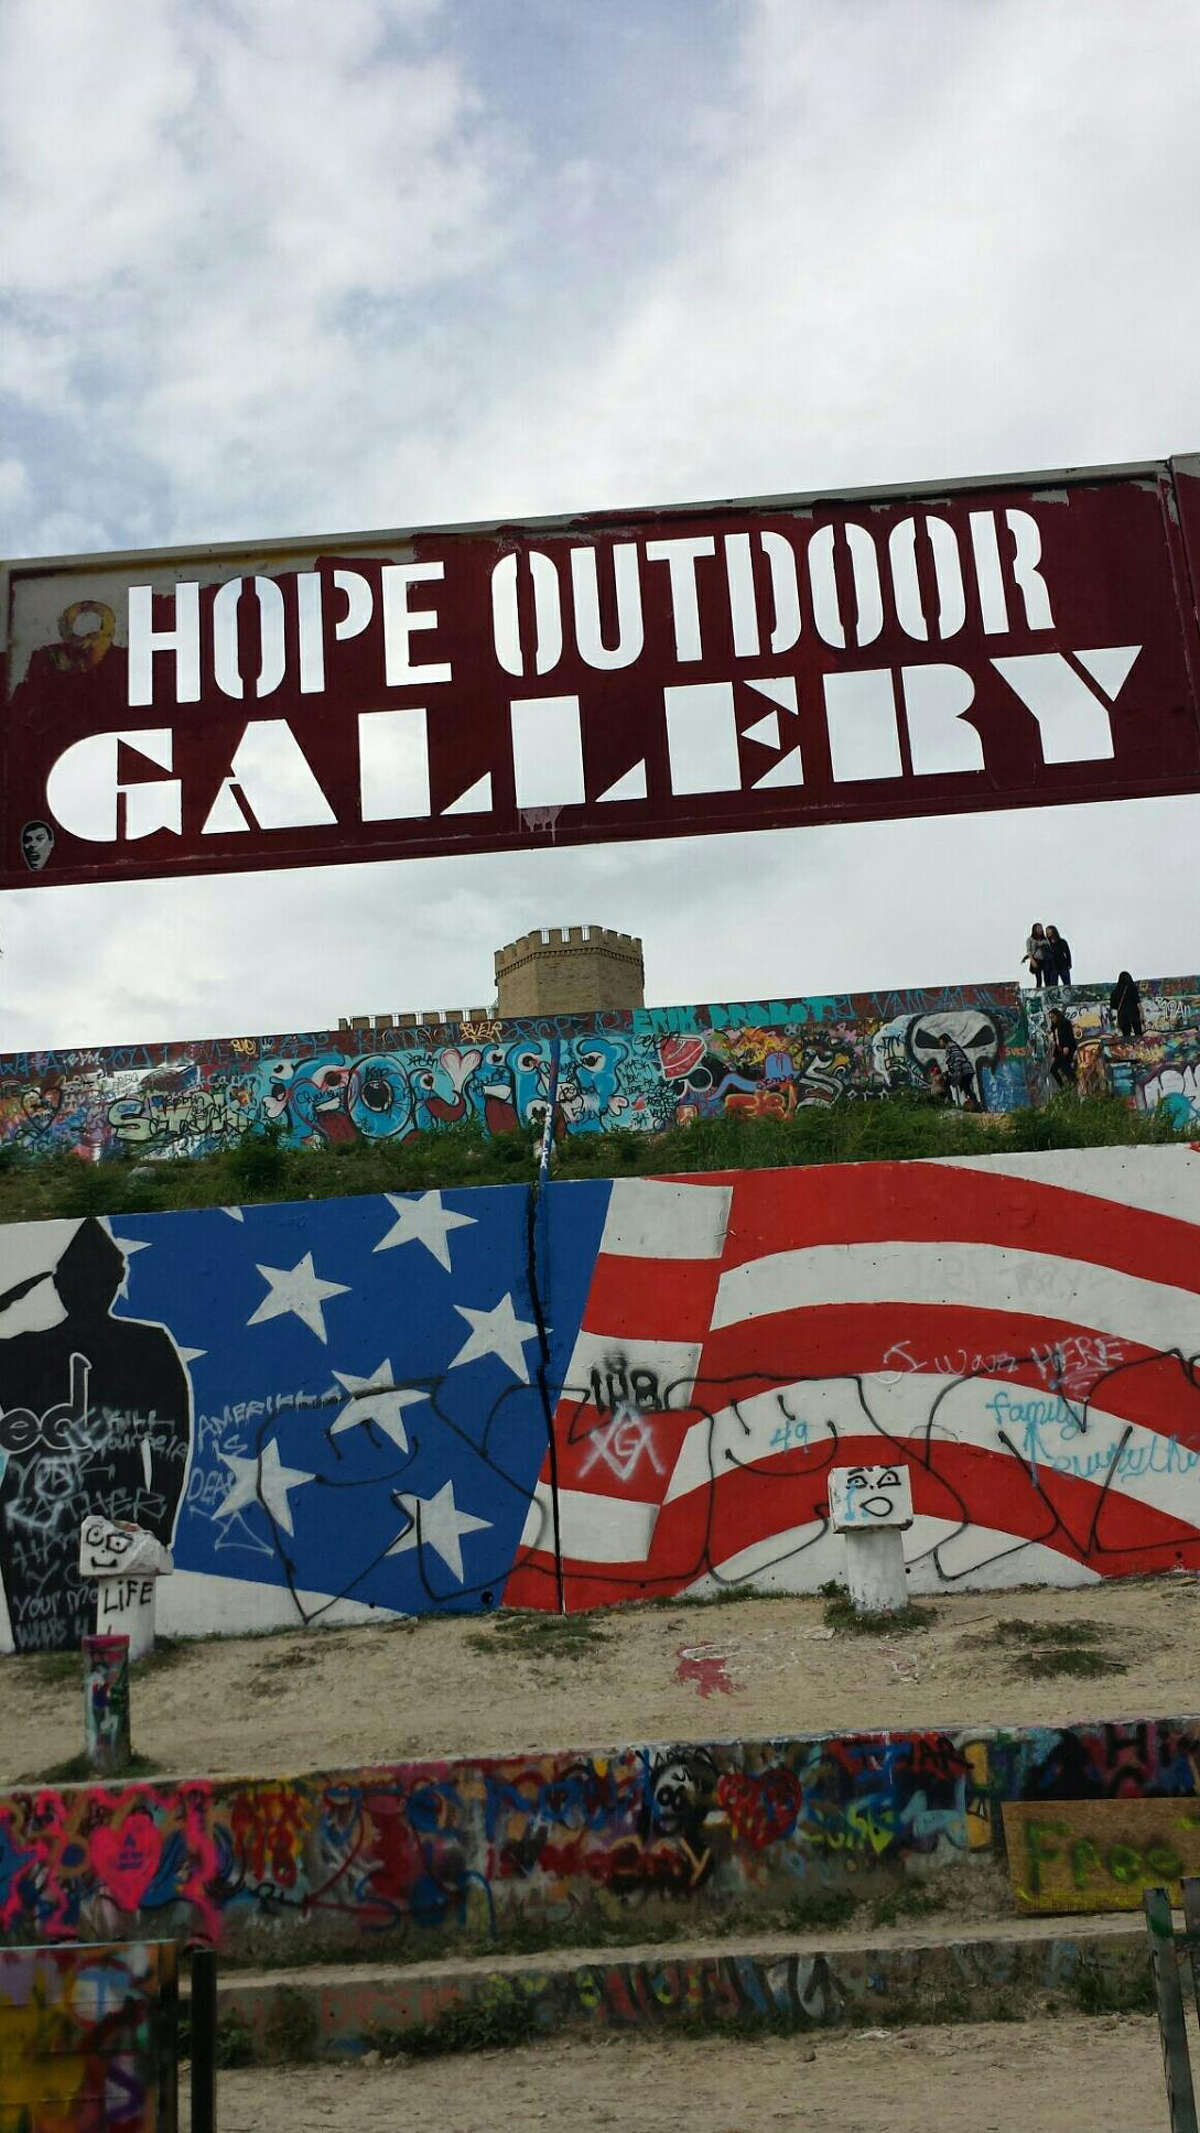 The HOPE Outdoor Gallery and graffiti park in October 2015.